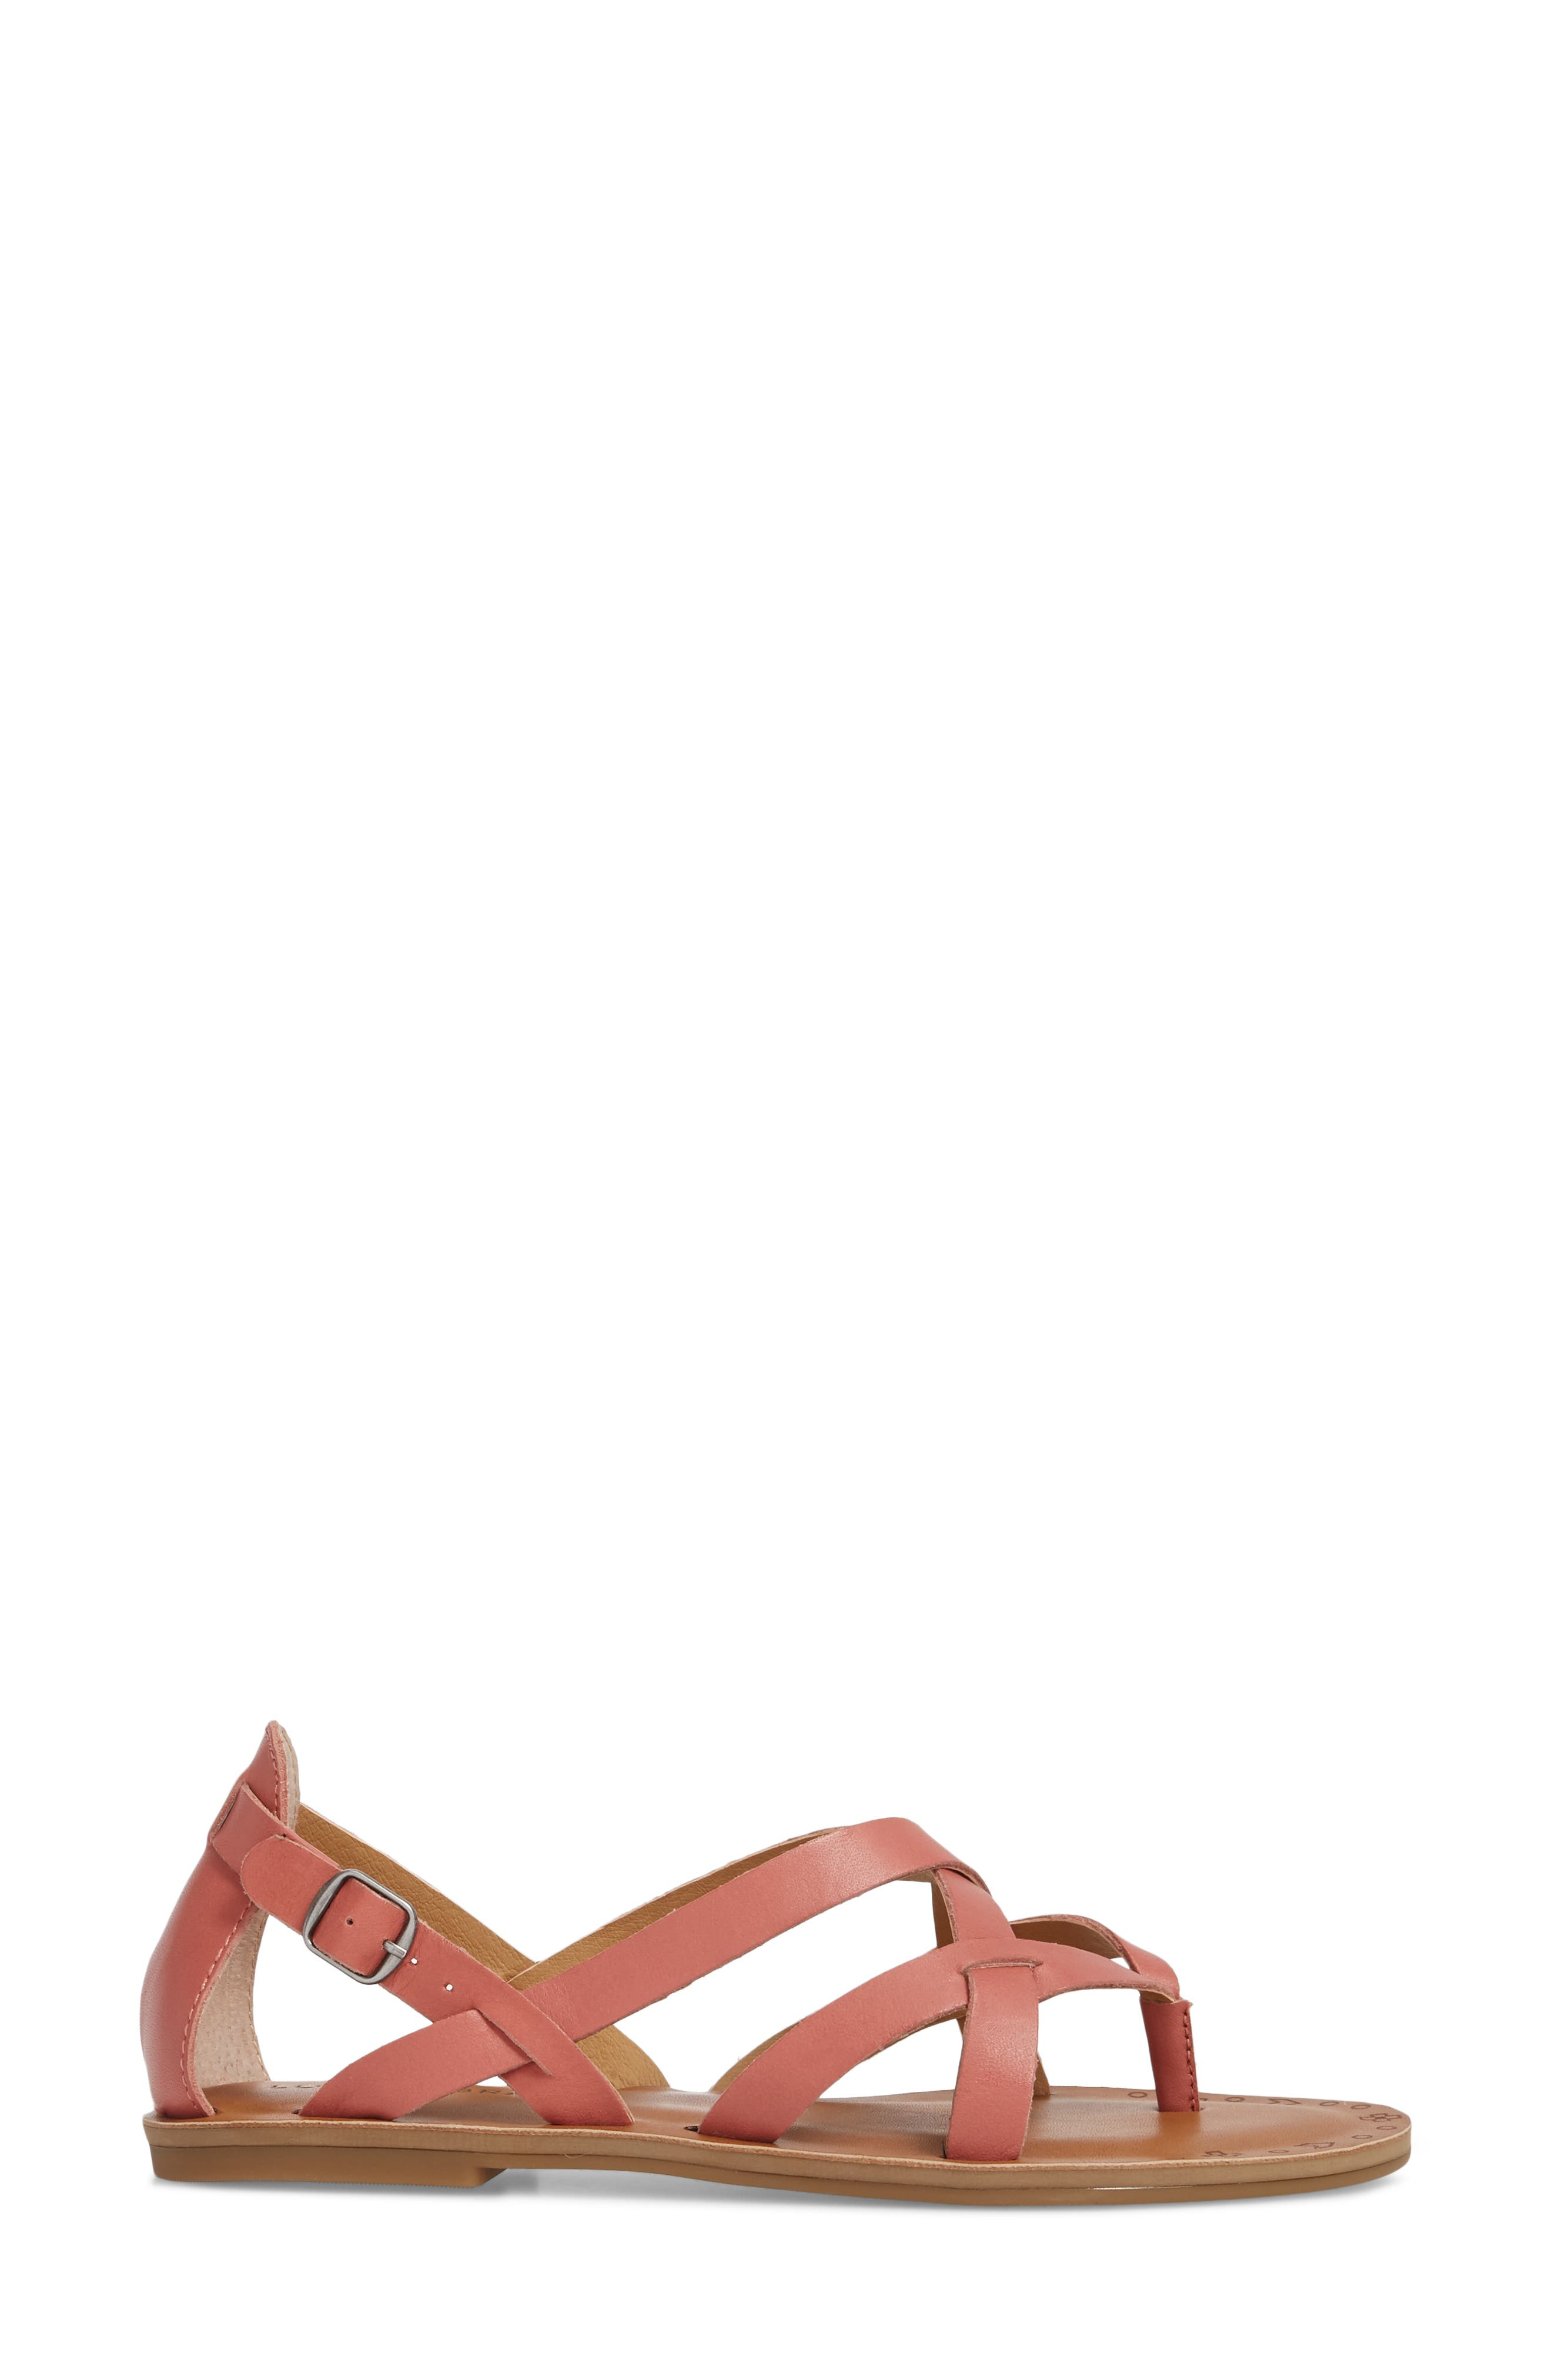 Ainsley Flat Sandal,                             Alternate thumbnail 3, color,                             Canyon Rose Leather